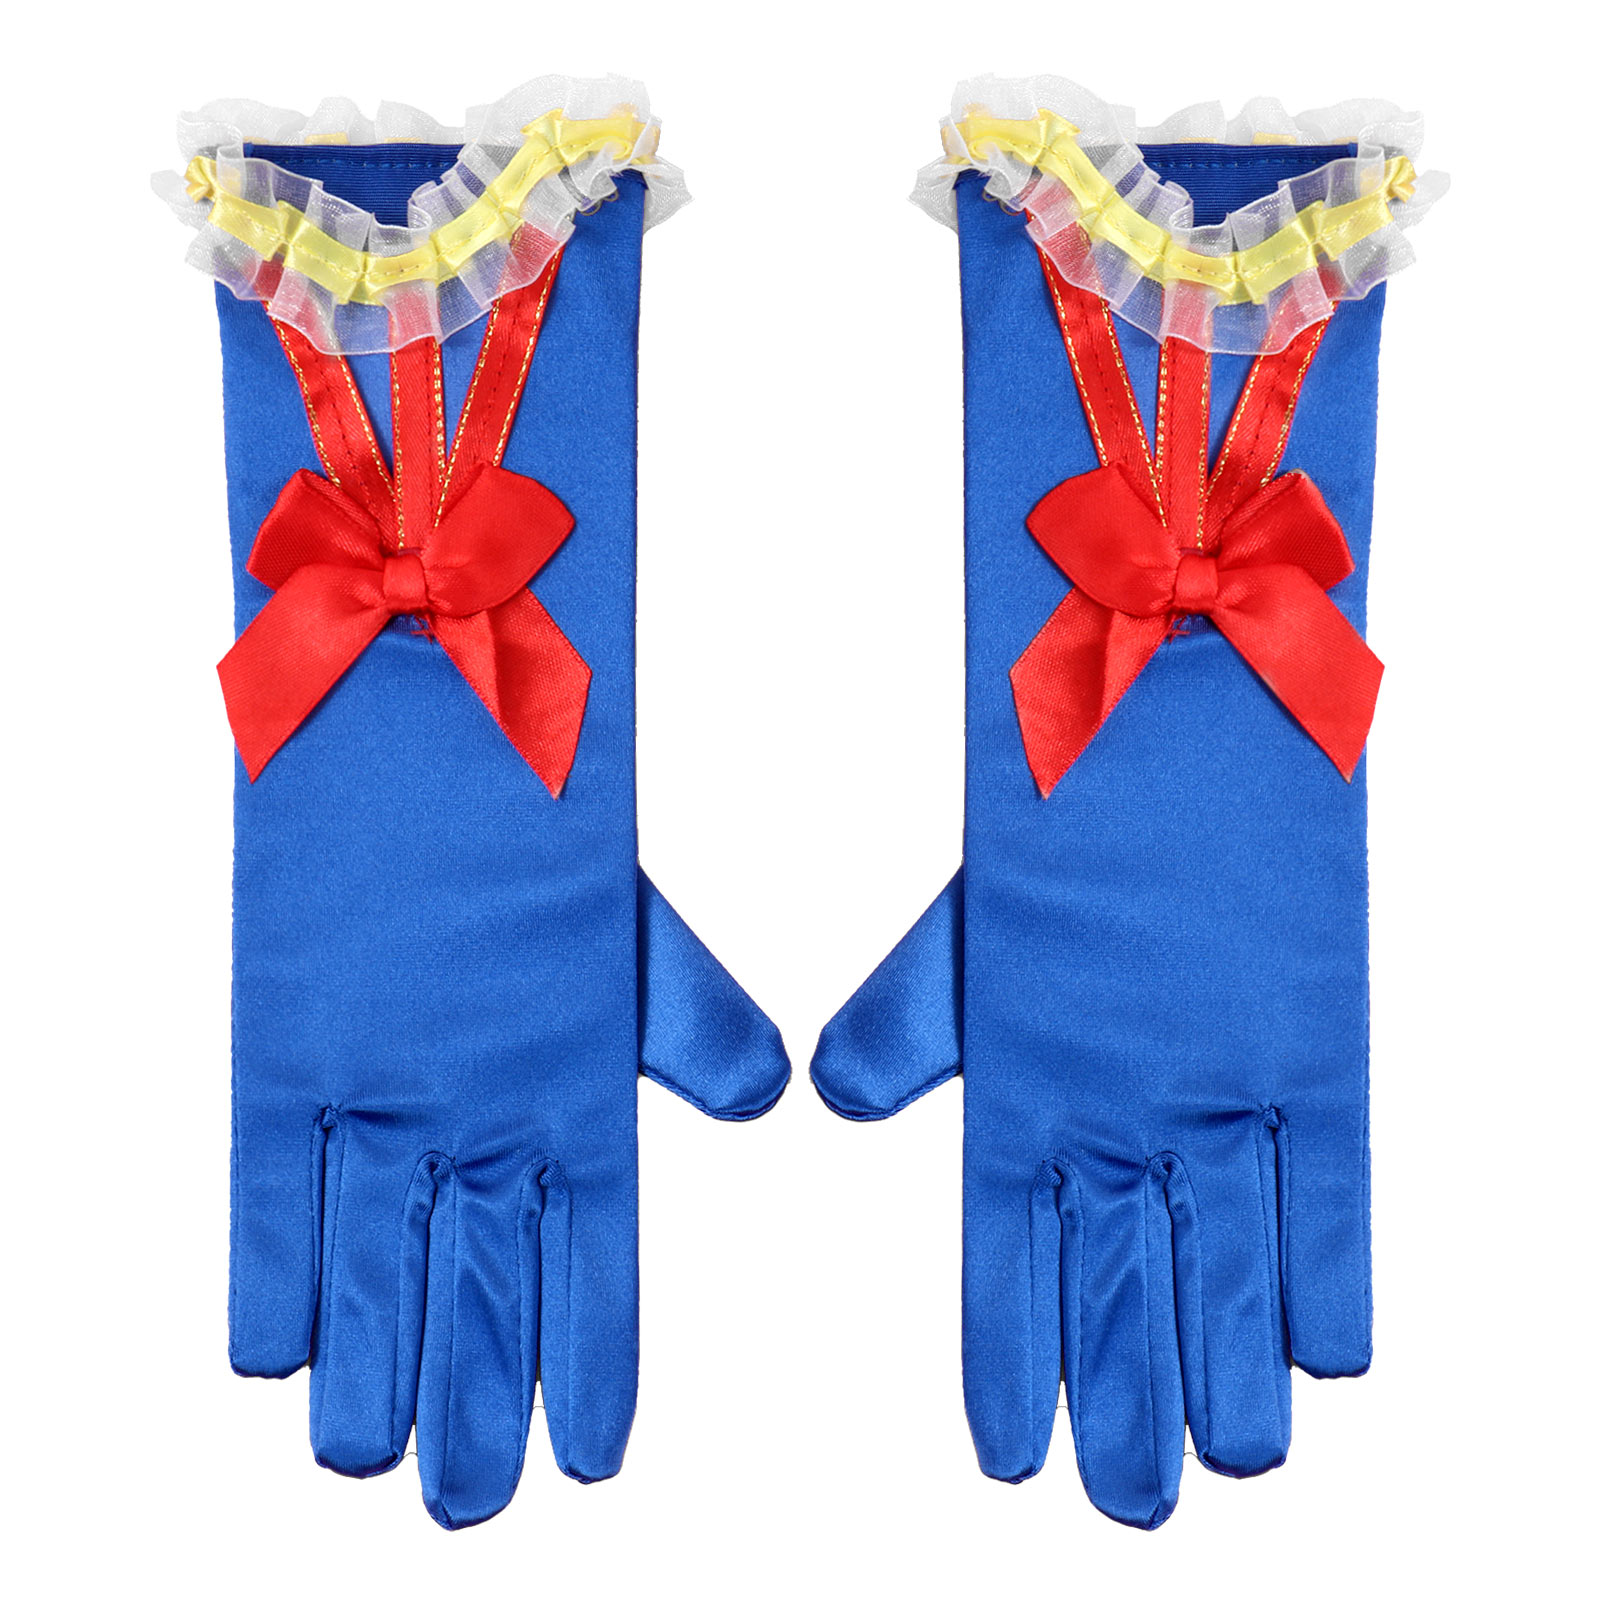 Elsas Girl Costume Princess Dress Up Gloves Girls Cosplay Costume Accessories Halloween Role Play Princess Birthday Party Gloves